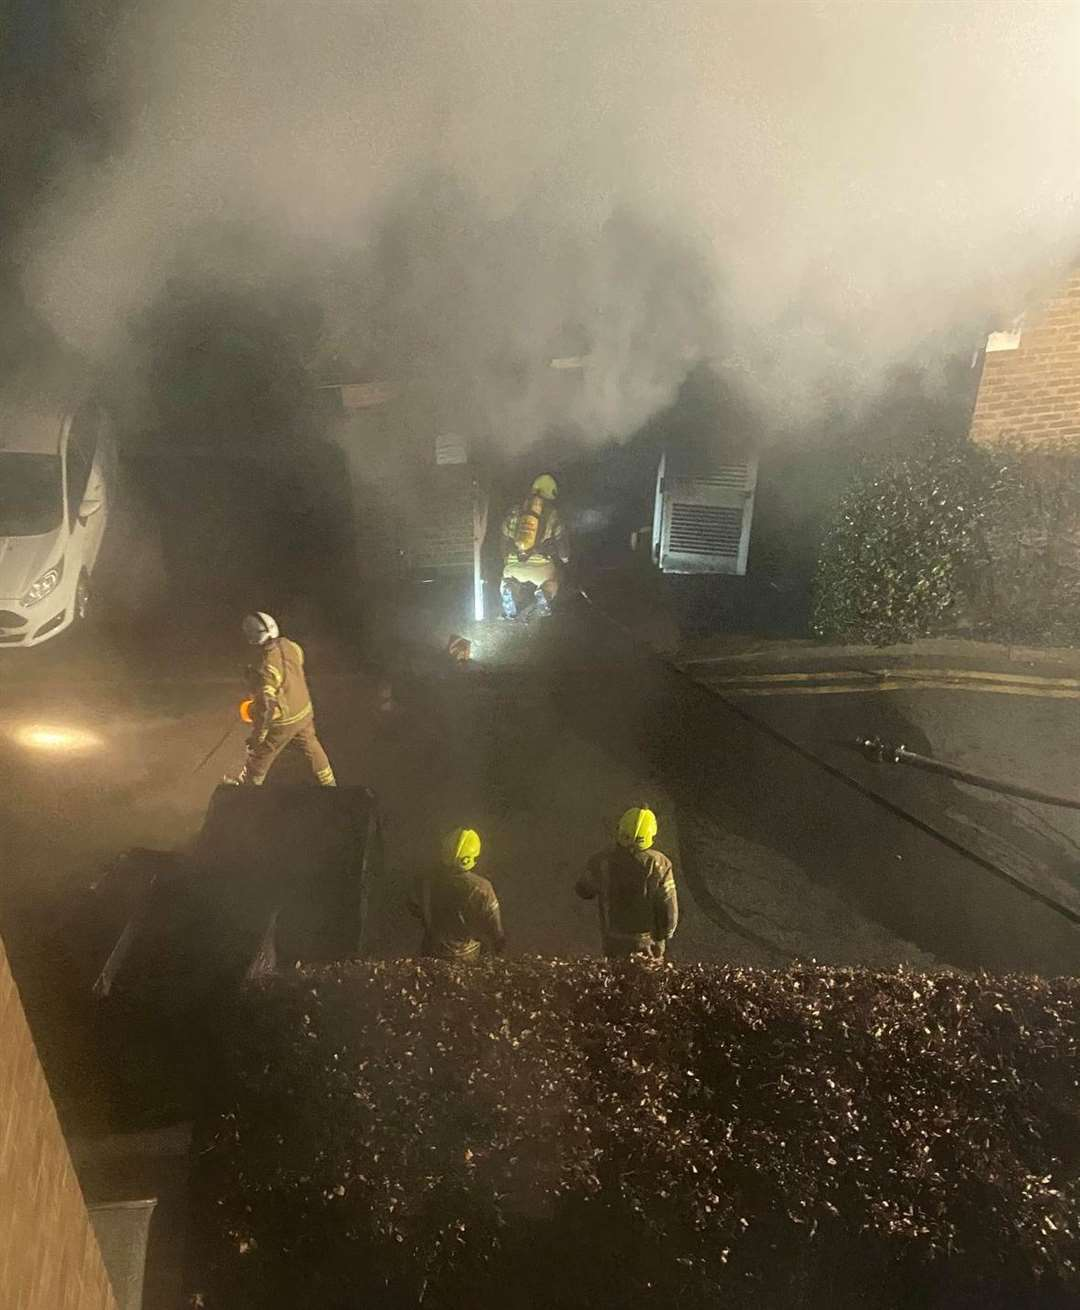 The fire at River Bank Close in Maidstone Picture: Callum Swan